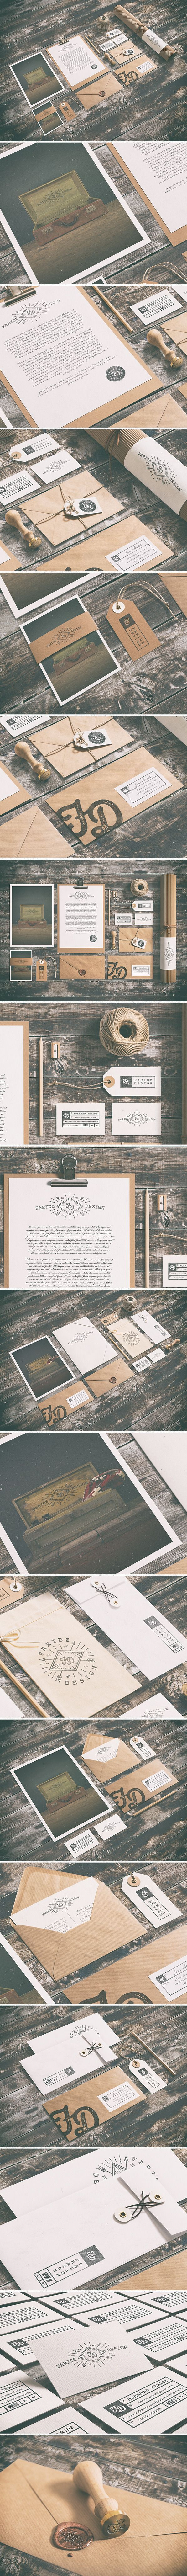 New Self ReBranding By Faridz Design Suite | #stationary